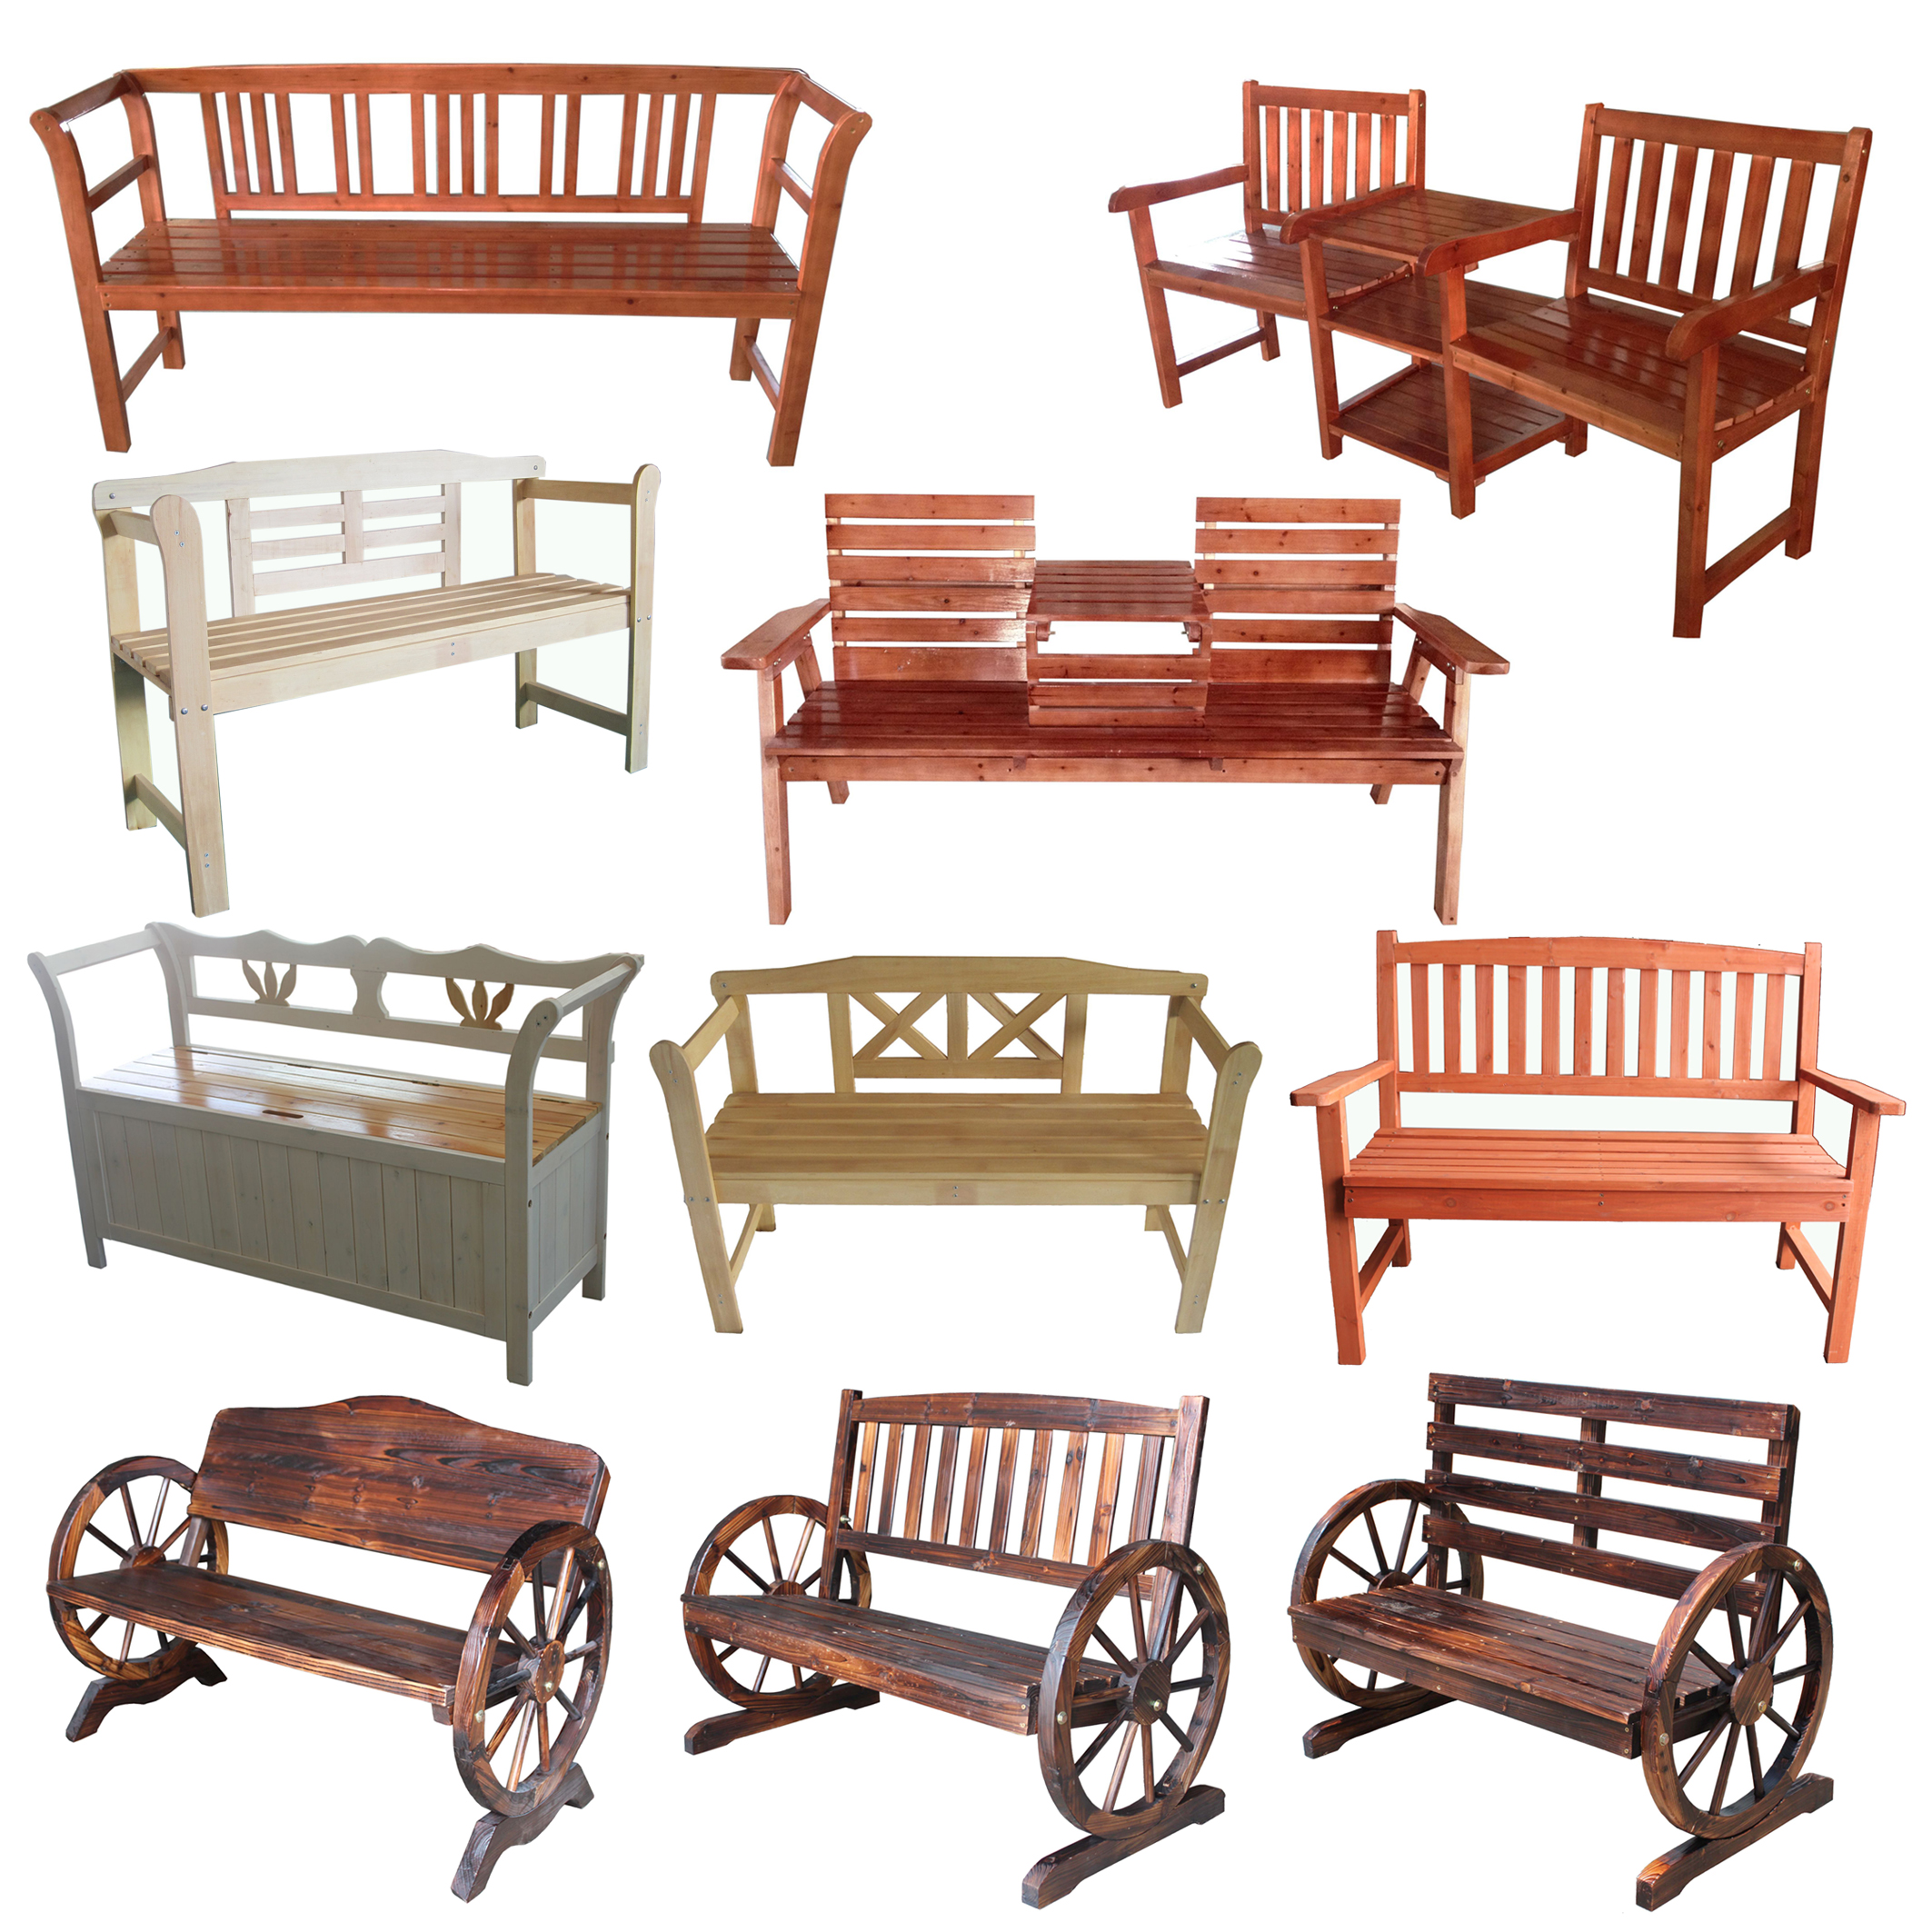 Outdoor Furniture 2 Seater